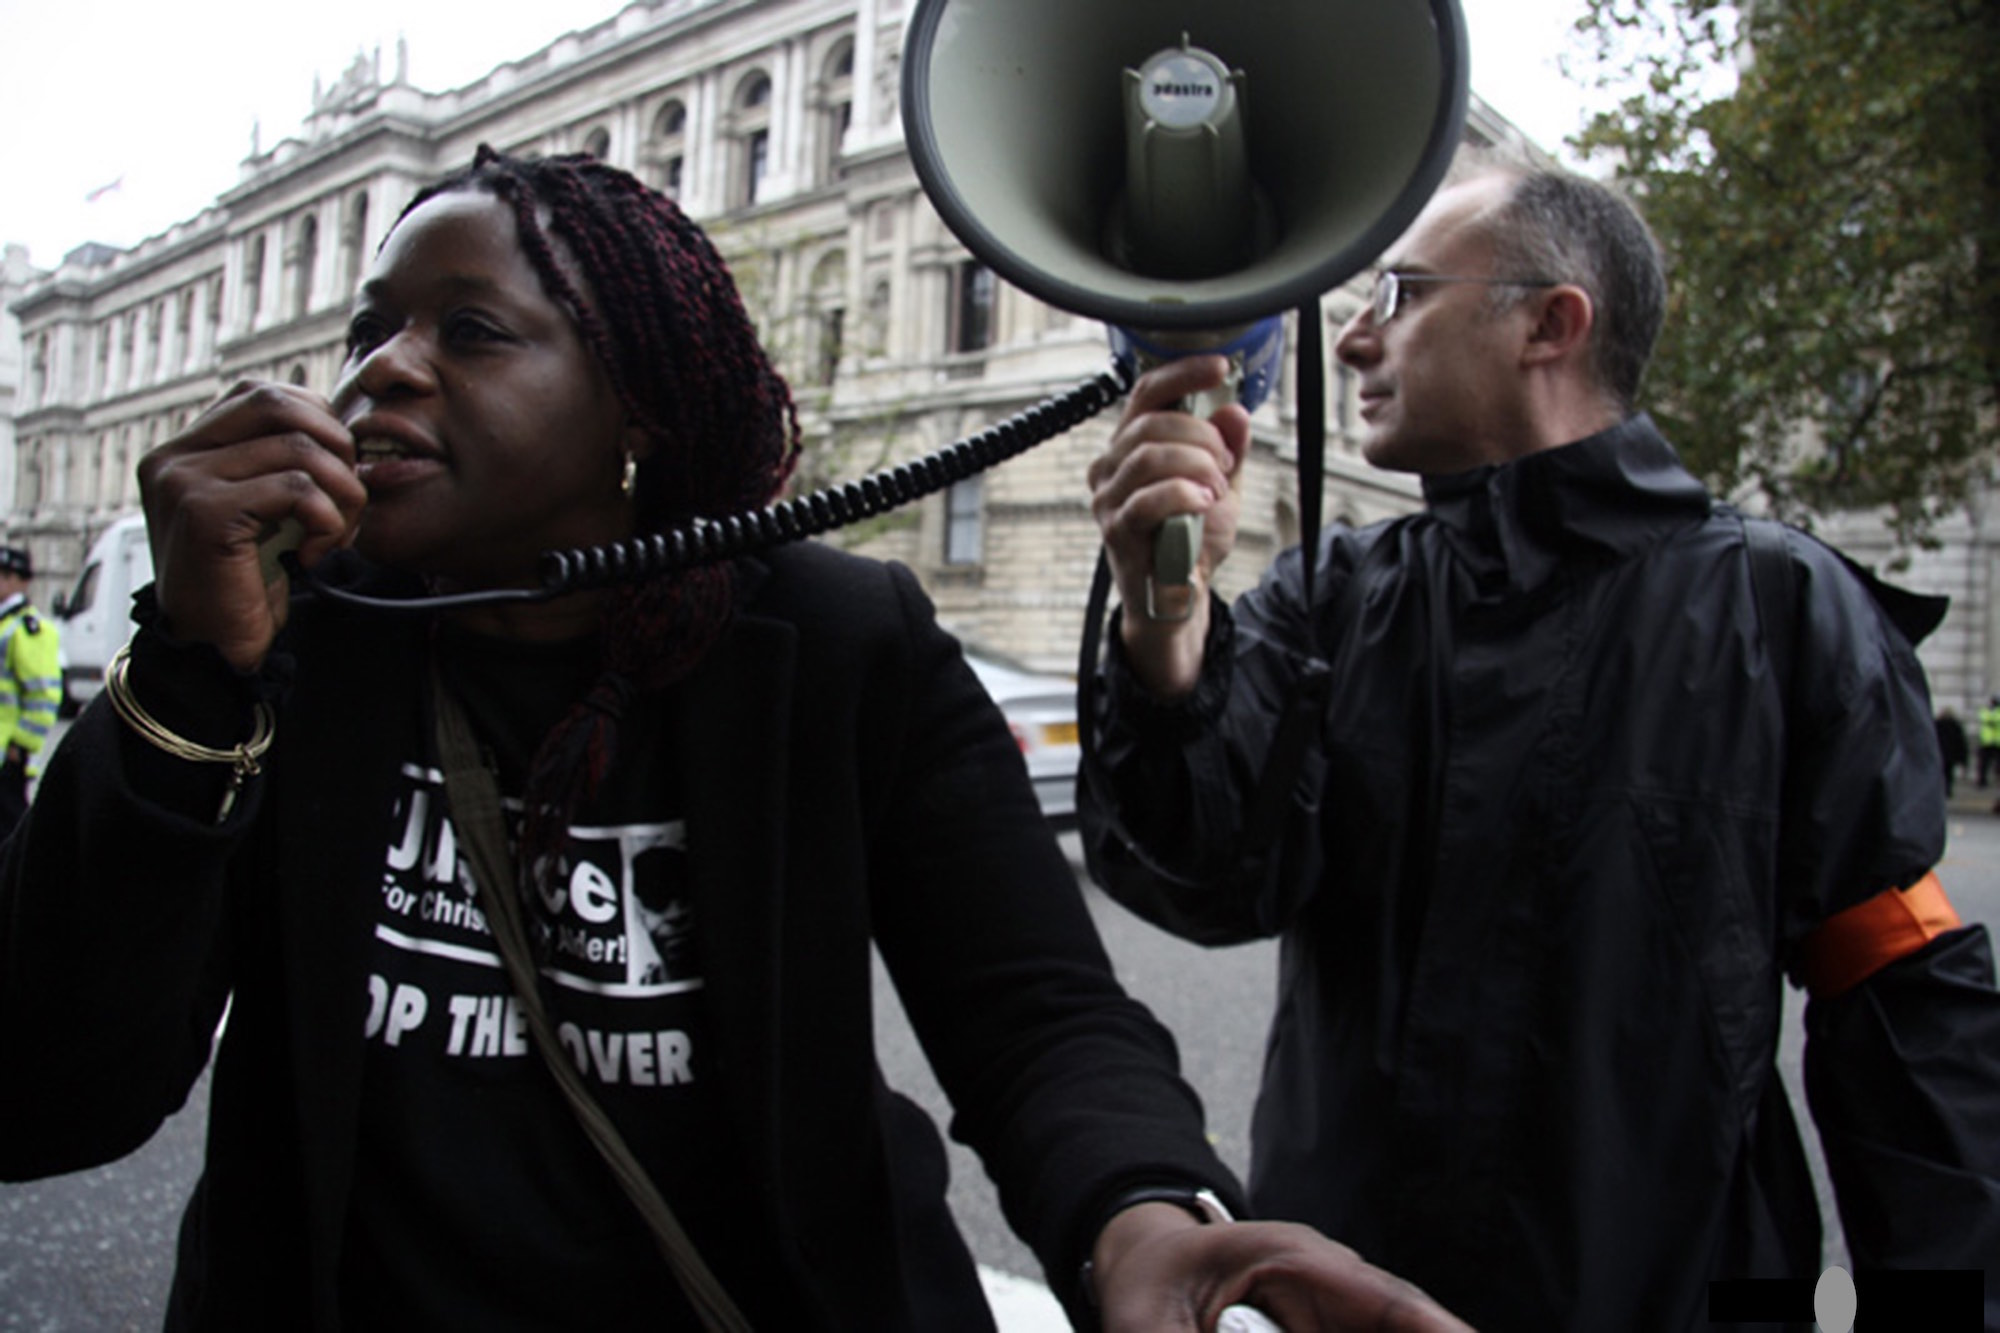 Janet Alder, sister of Christopher Alder, protests alongside Ken Fero